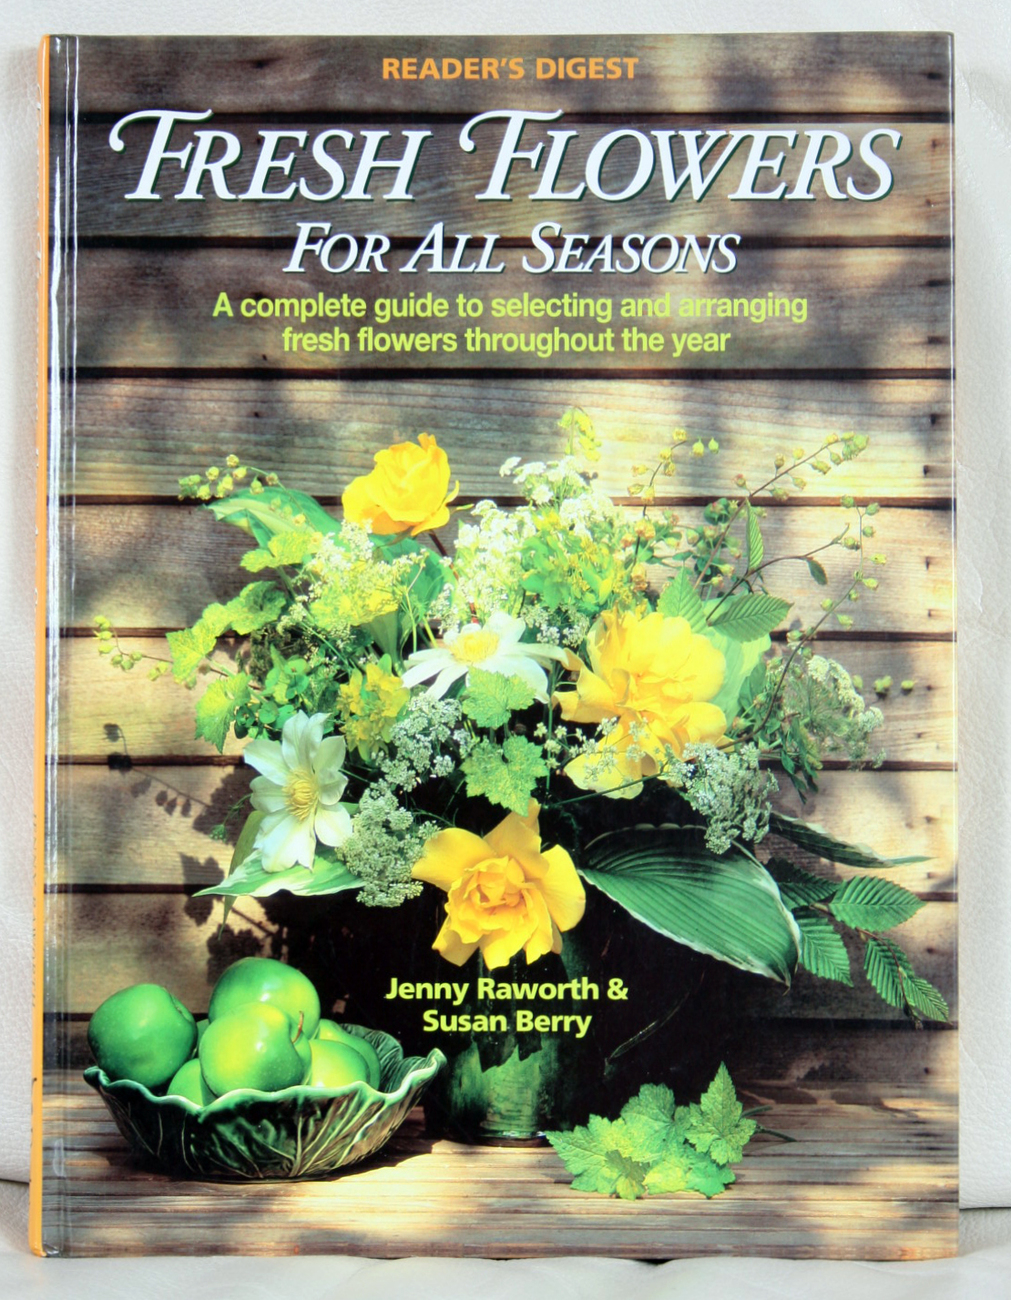 Fresh Flowers For All Seasons by Jenny Raworth